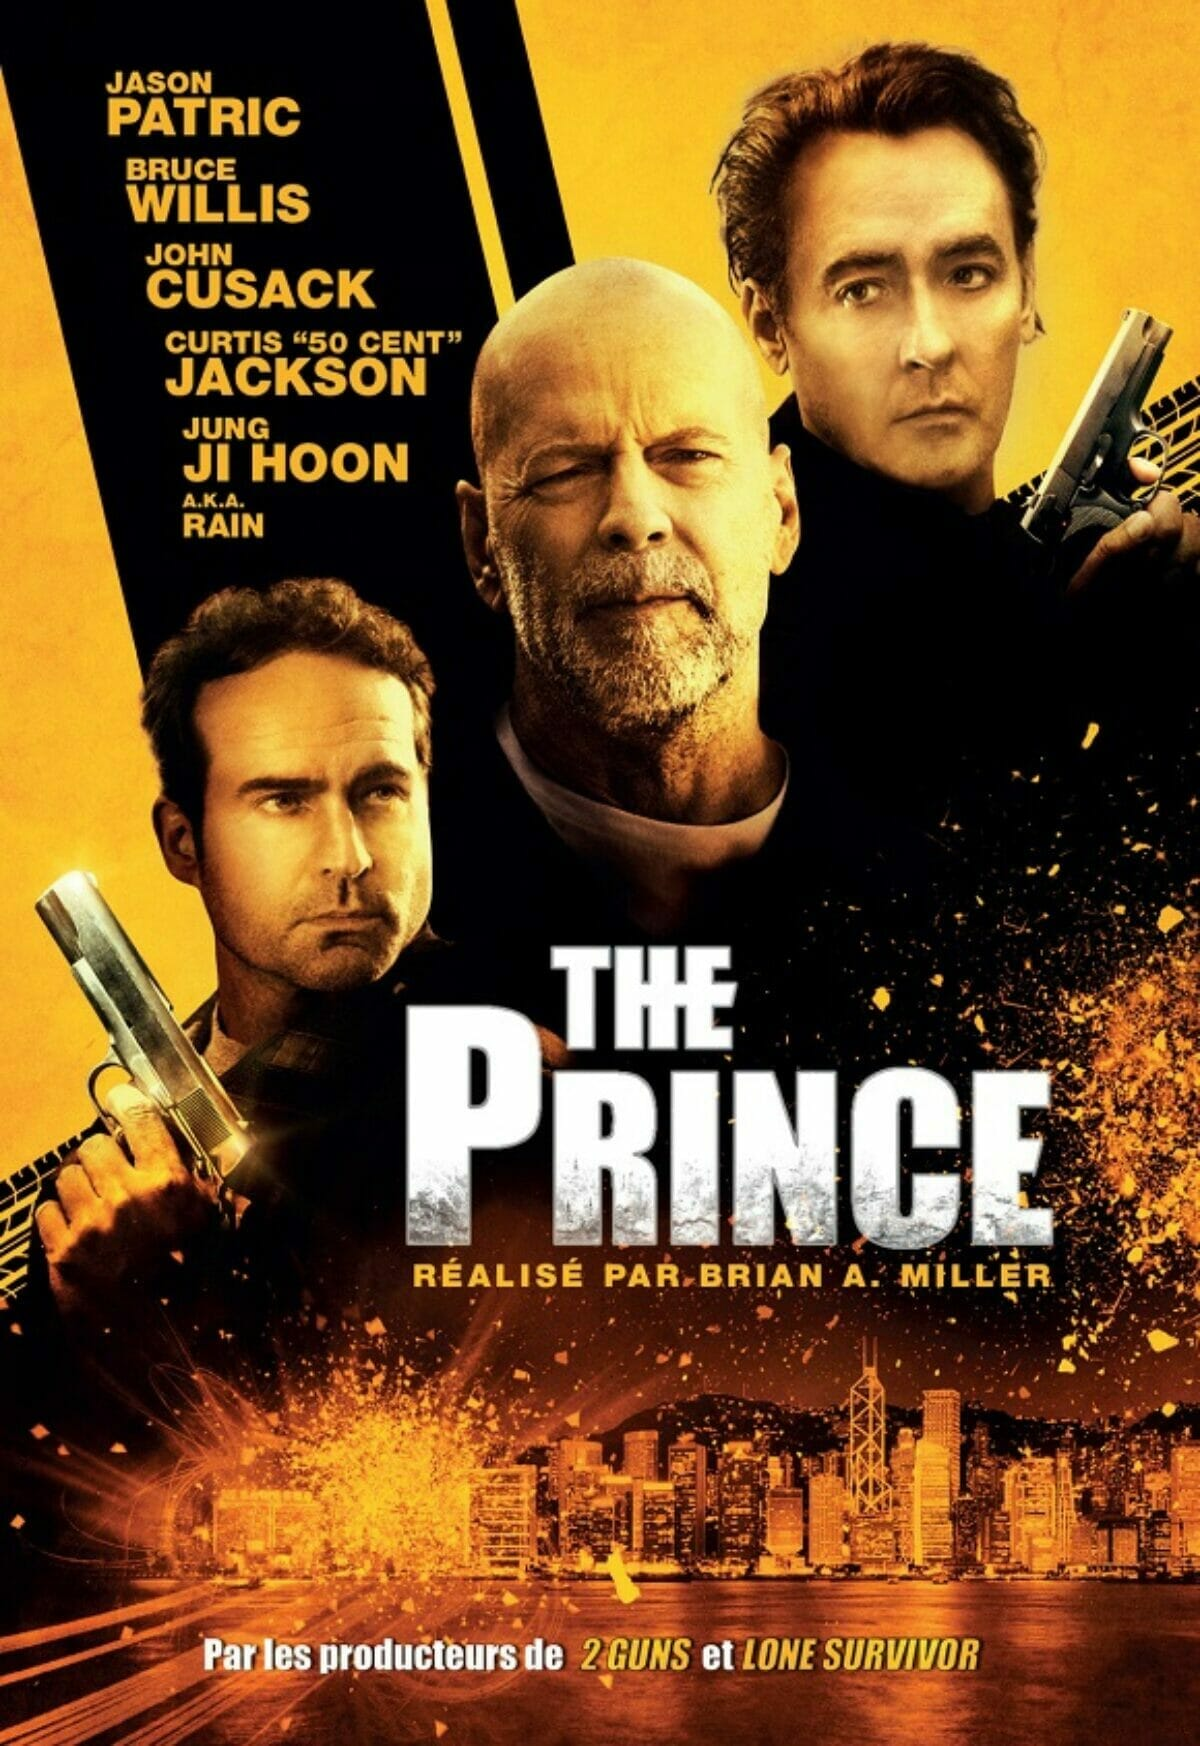 The-Prince-Bruce-Willis-Poster